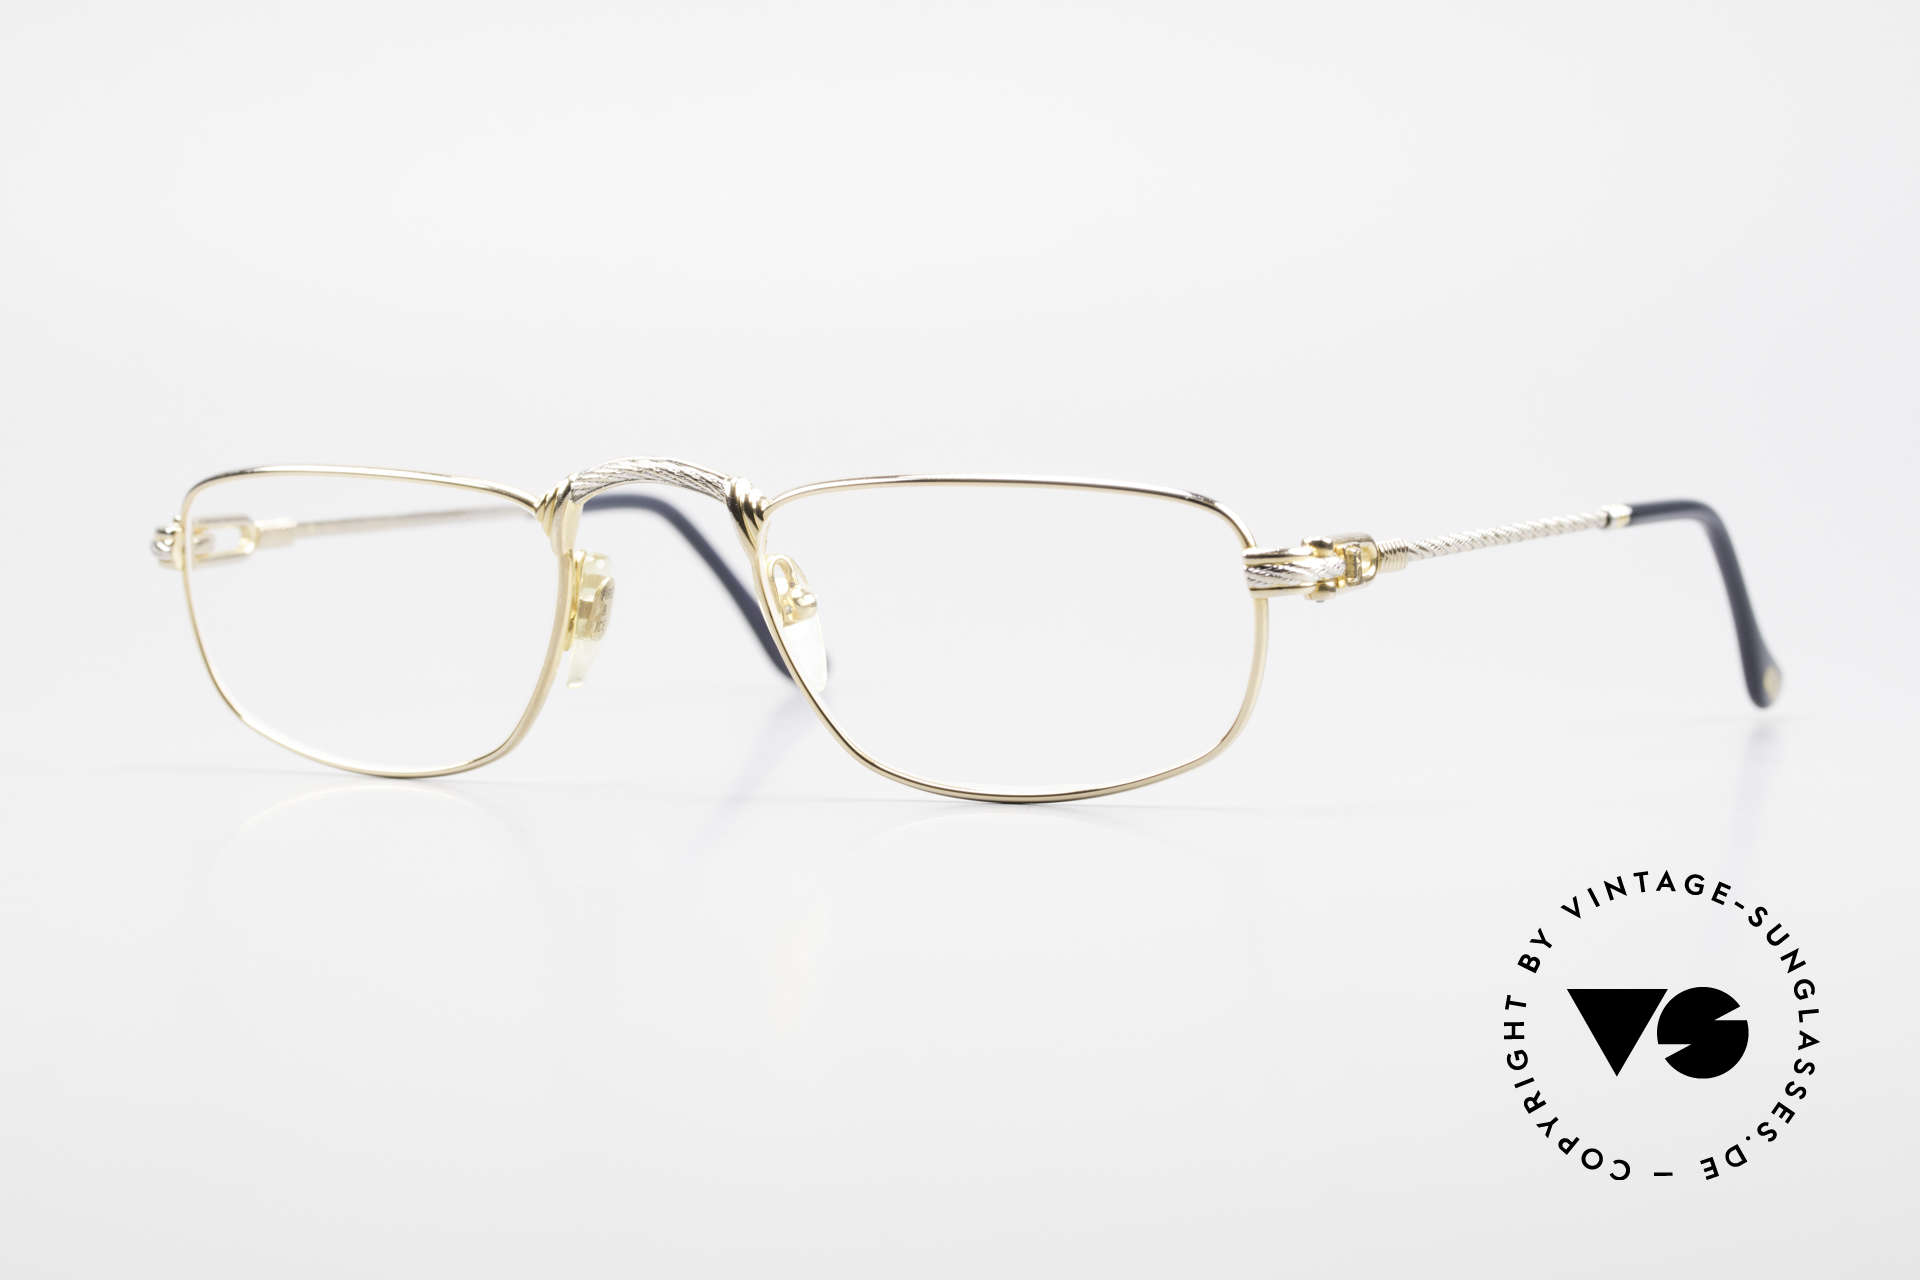 Fred Demi Lune Half Moon Reading Glasses, vintage reading glasses by Fred, Paris from the 1990's, Made for Men and Women